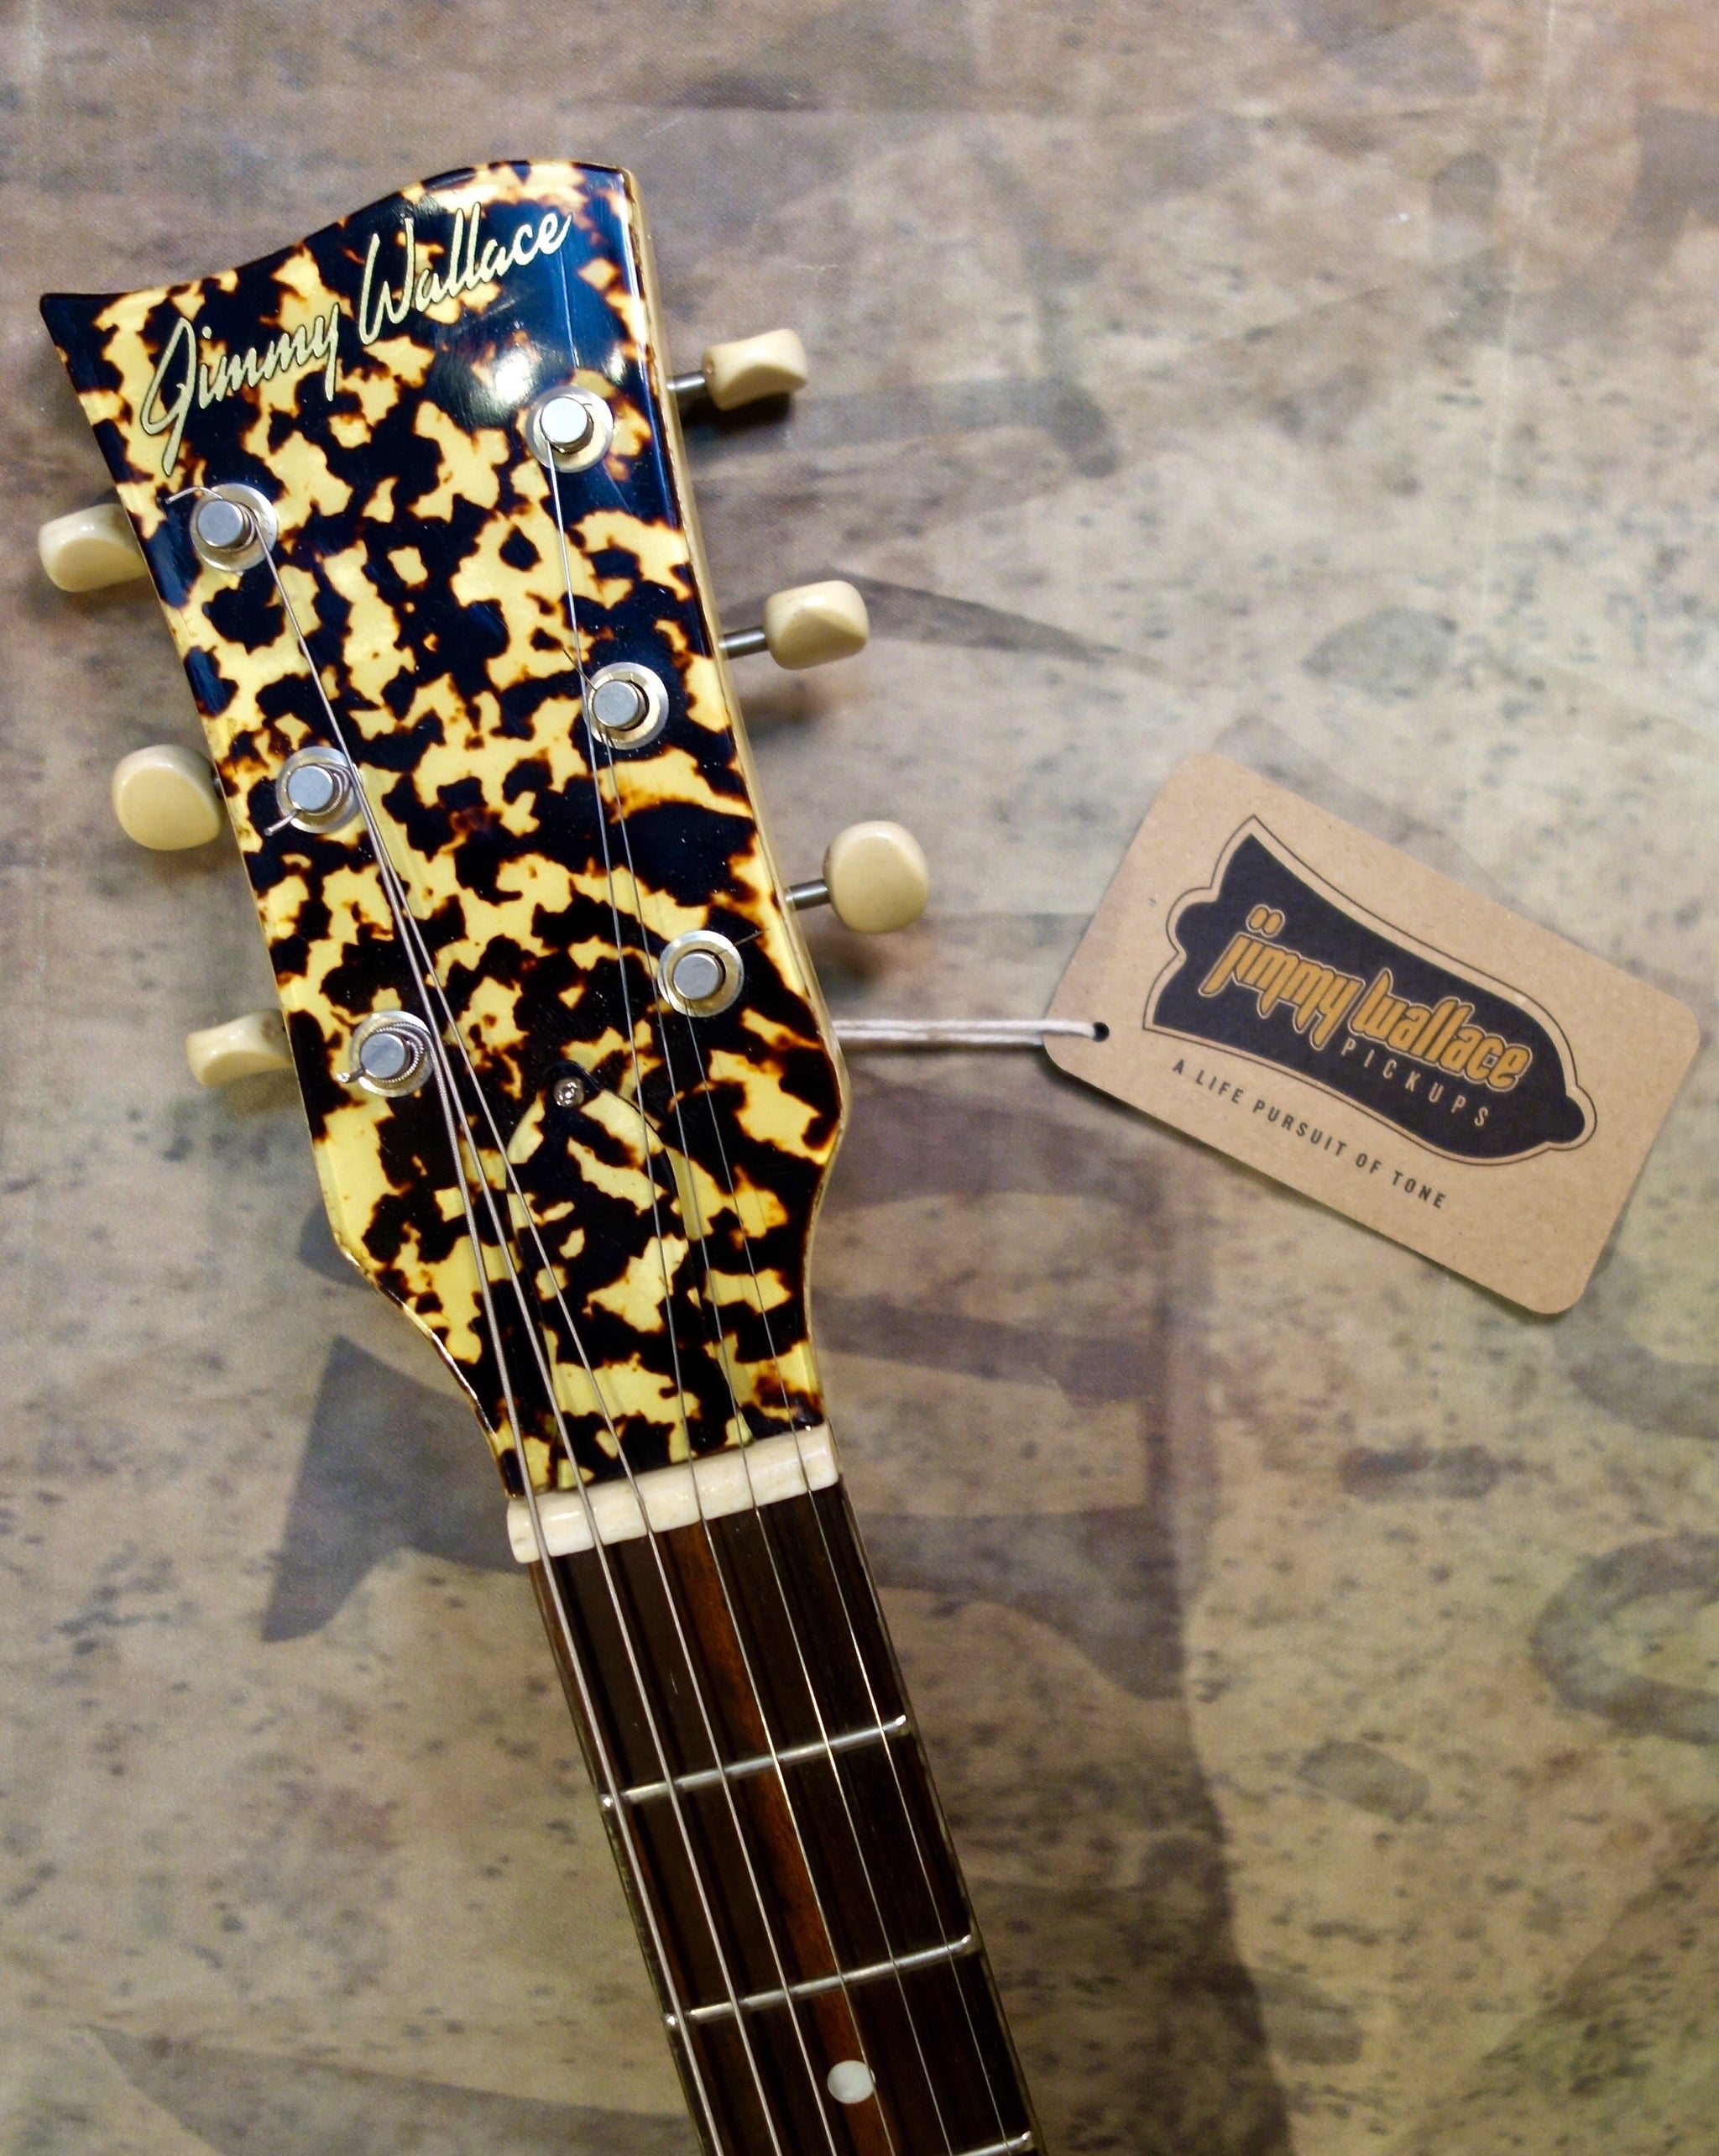 Jimmy Wallace DC Special Matching Headstock